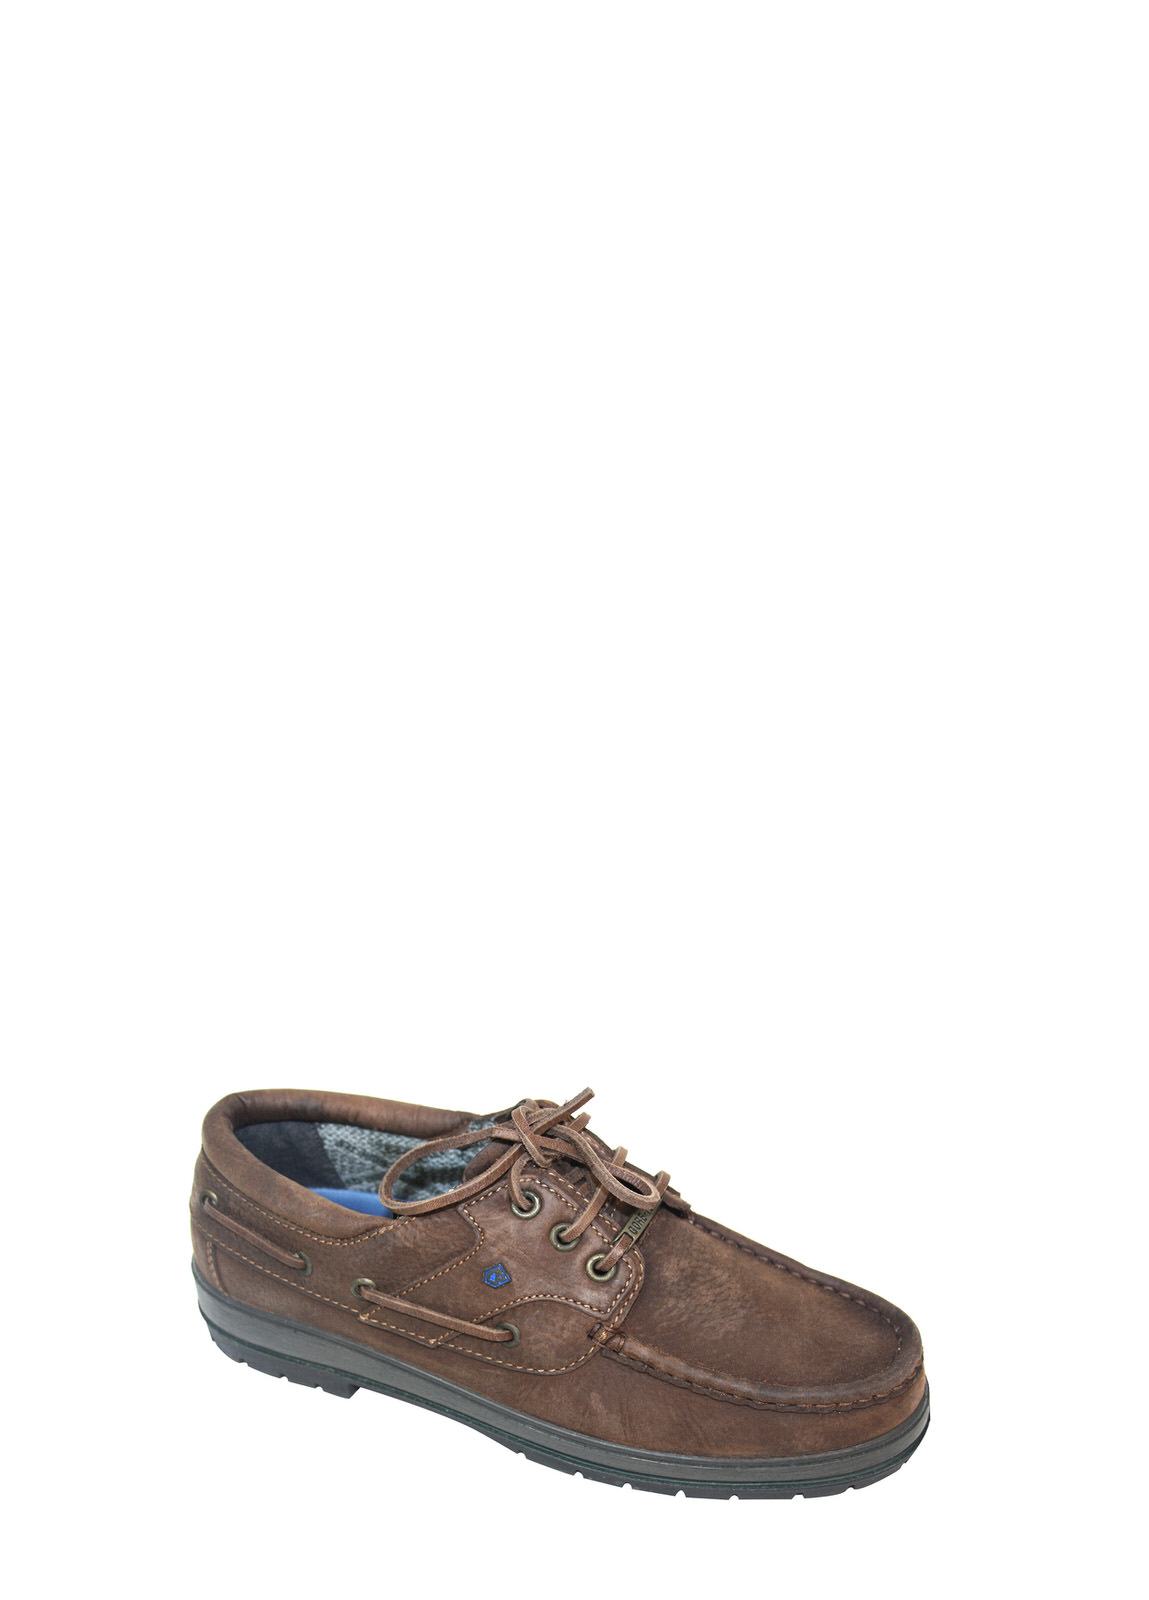 Dubarry_Kilkenny Moccasins - Brown Multi_Image_1